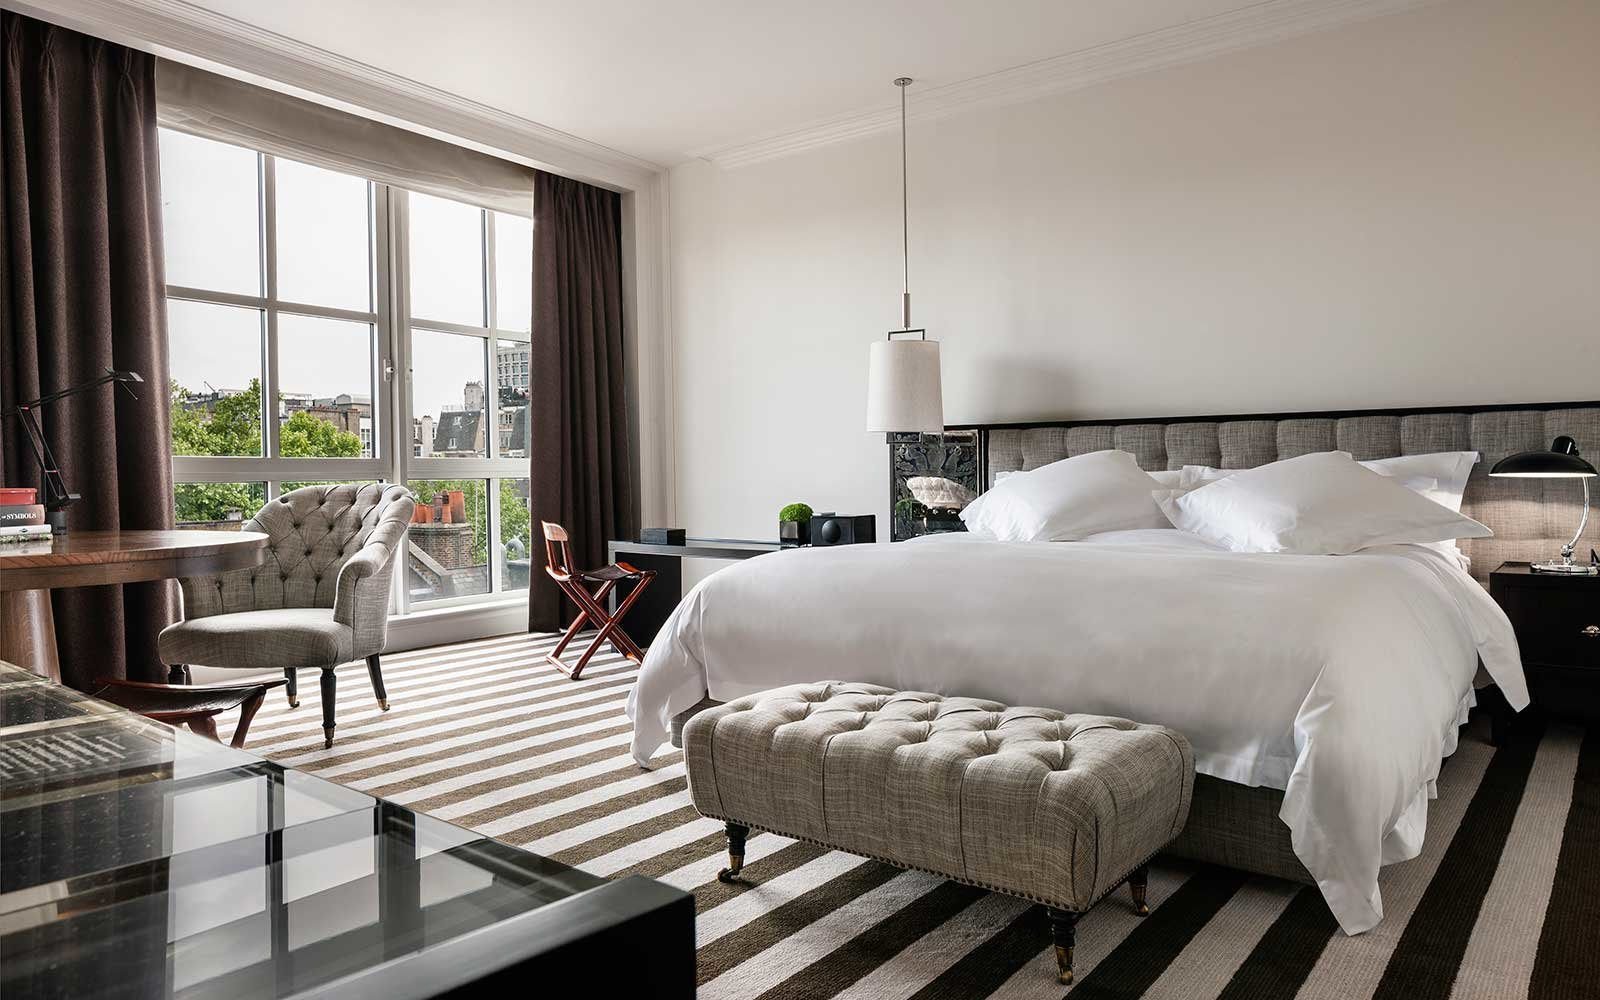 Rosewood Hotel in London